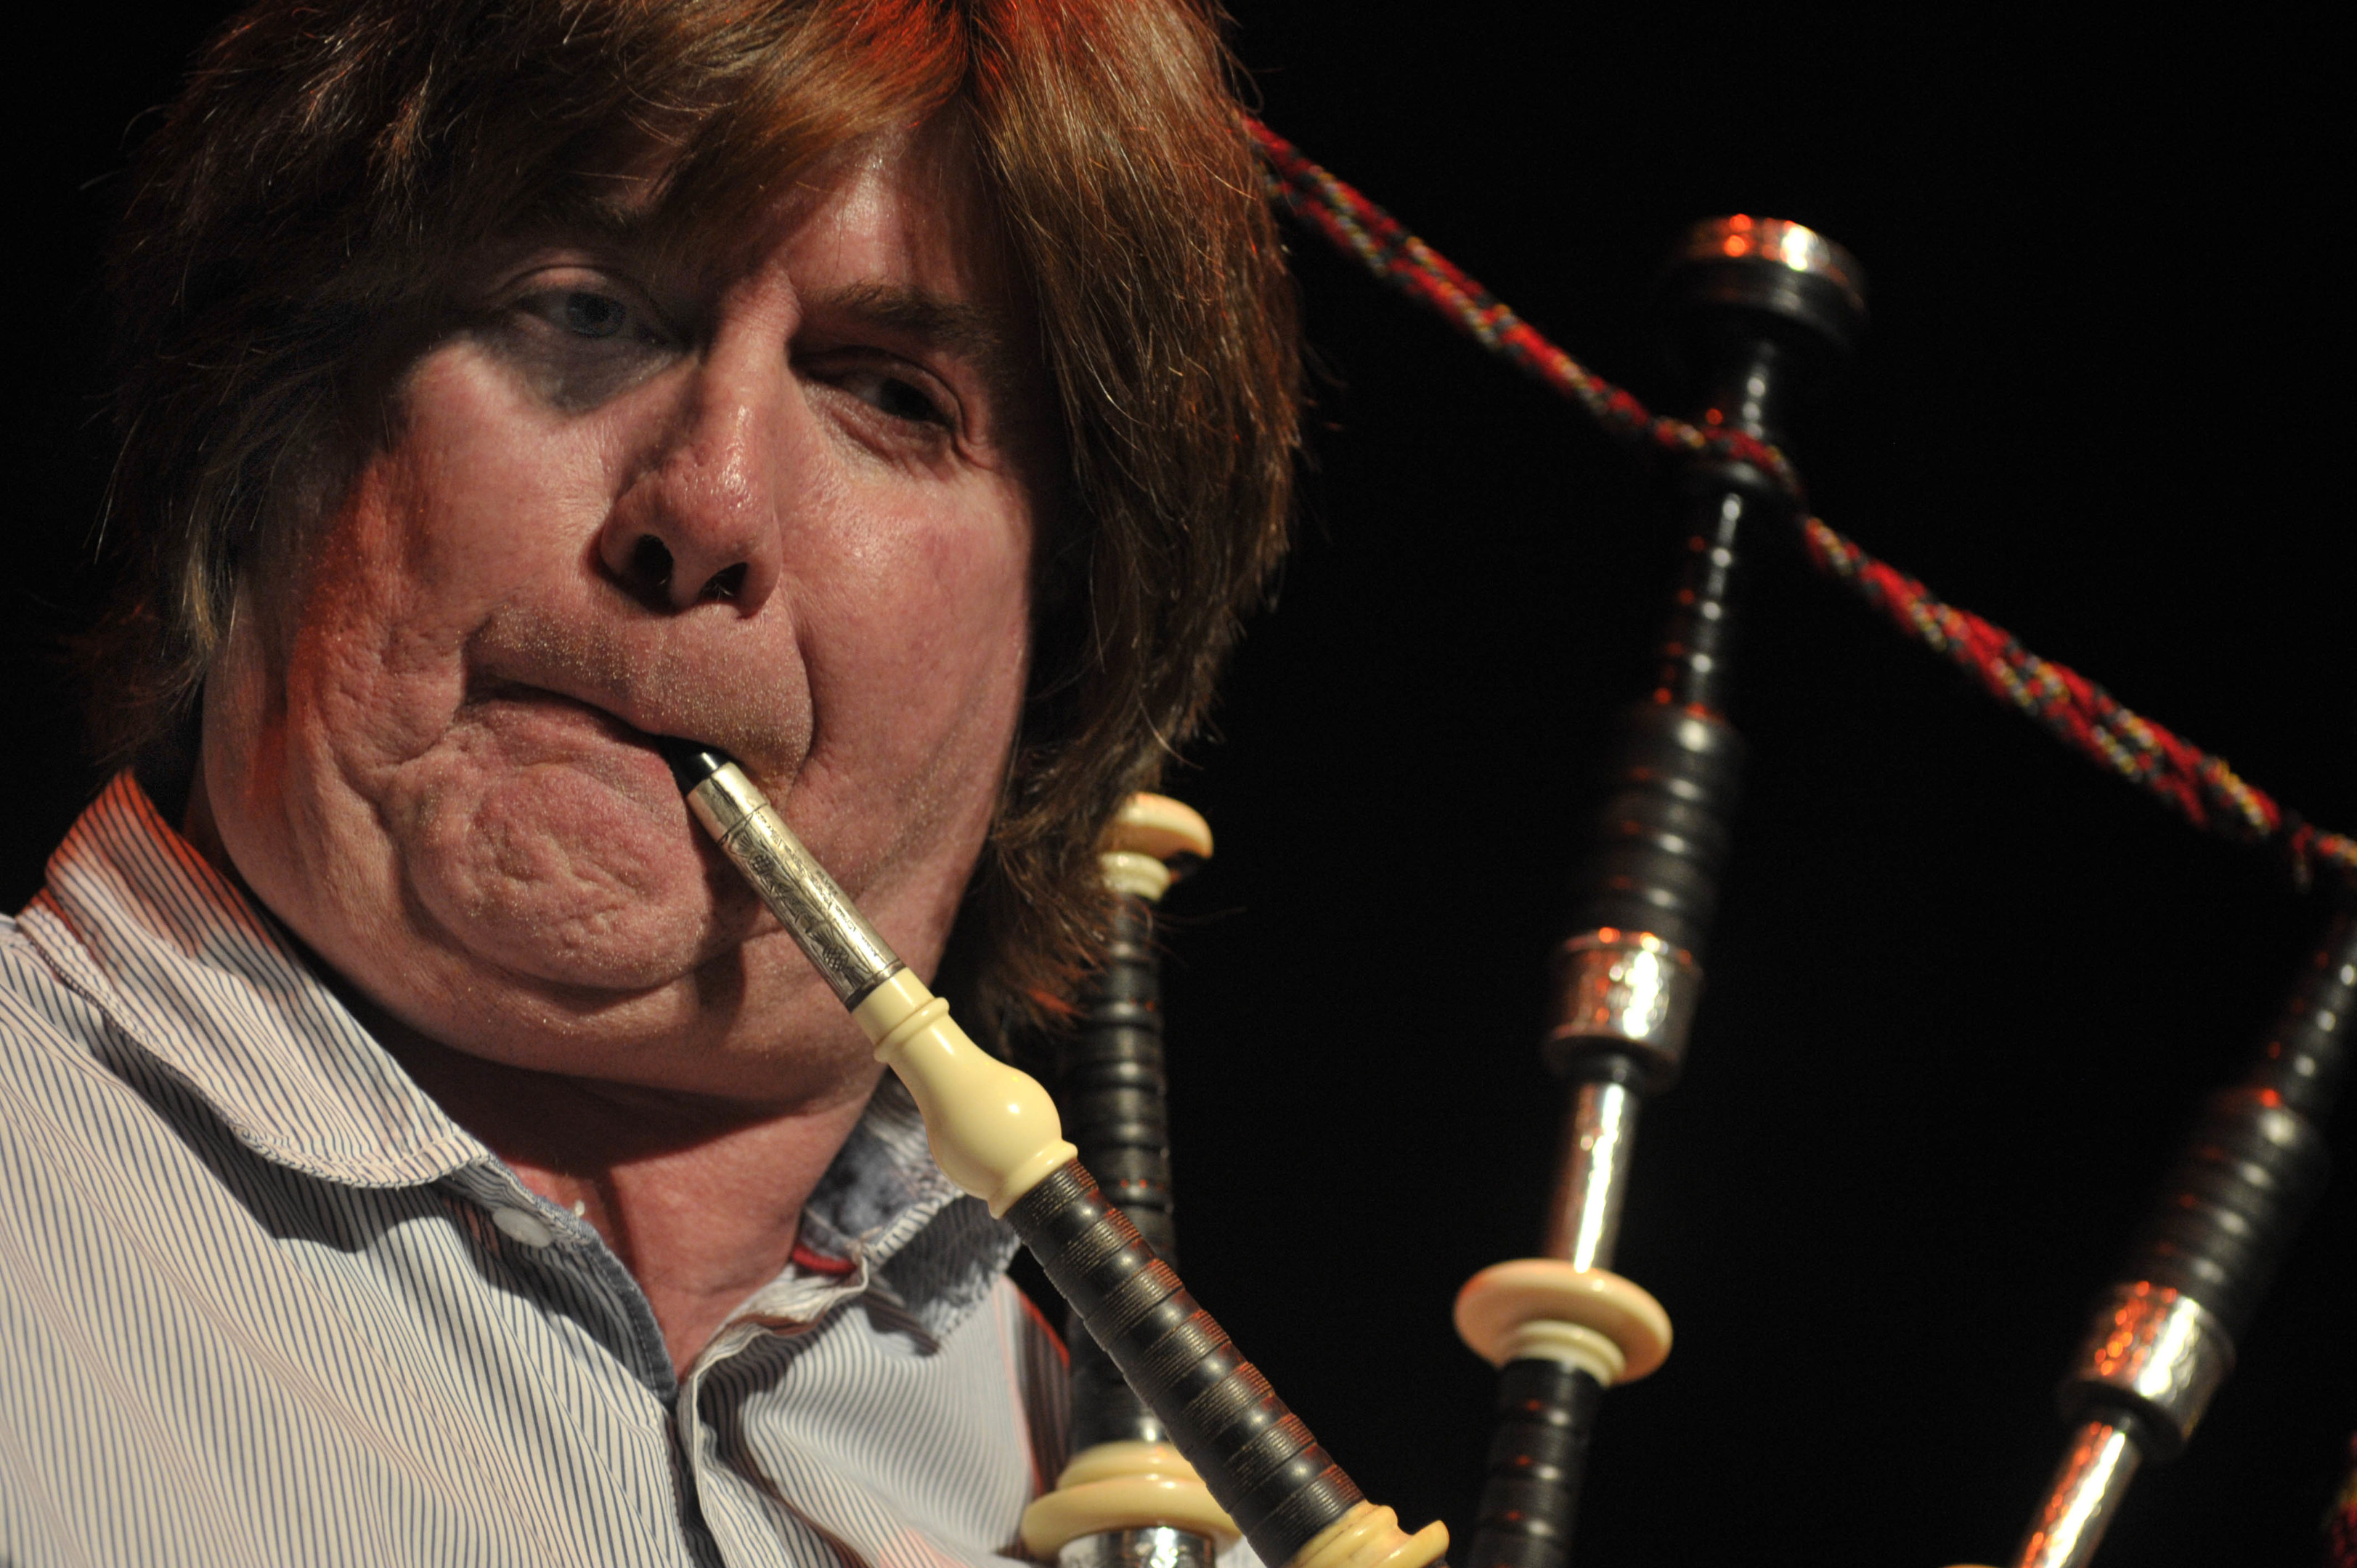 Virtuoso piper and multi-instrumentalist Fred Morrison in action.